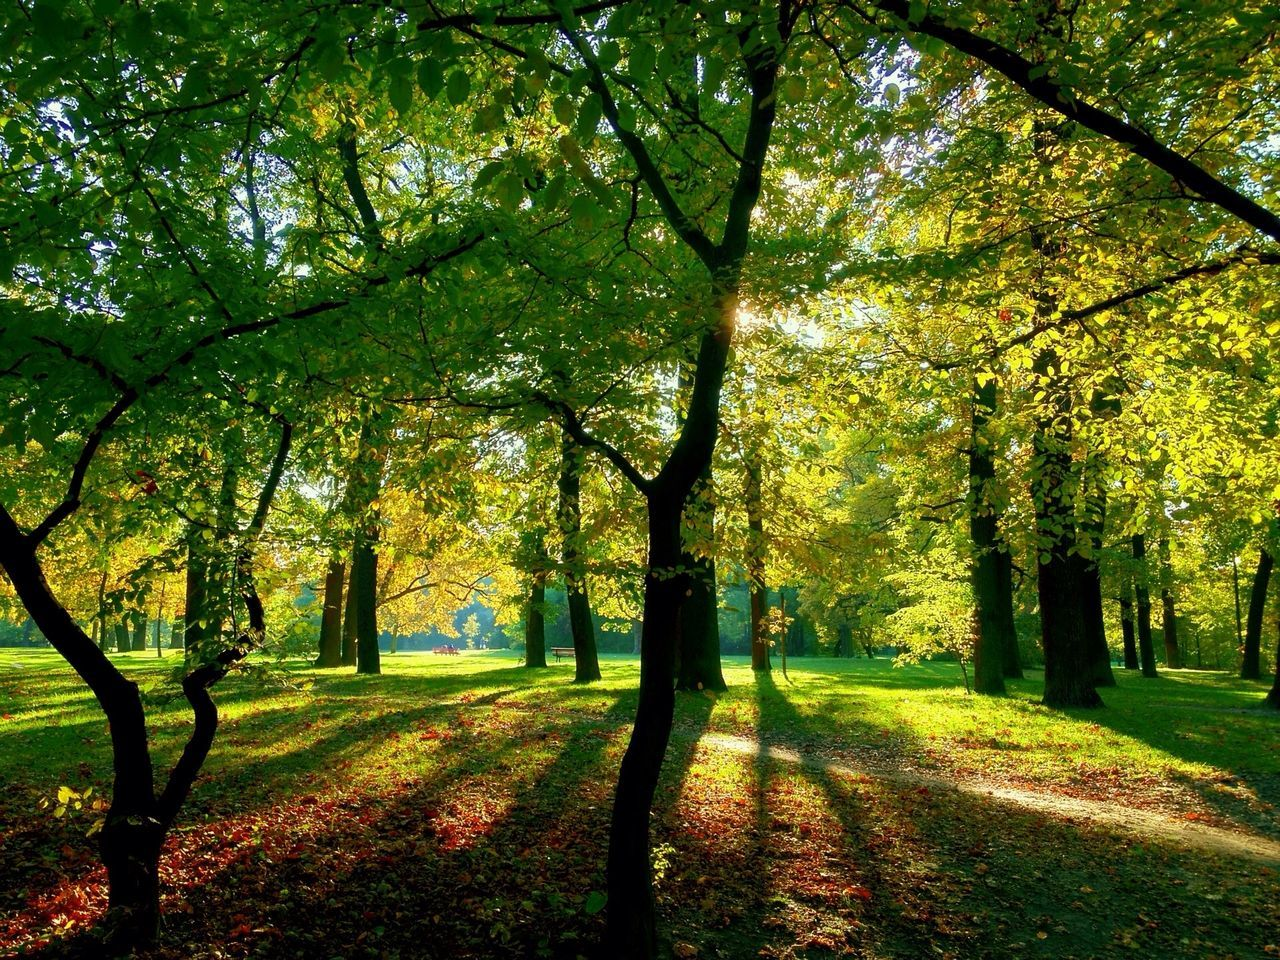 tree, autumn, nature, tranquility, scenics, beauty in nature, tranquil scene, branch, outdoors, growth, no people, day, leaf, landscape, sunlight, tree trunk, grass